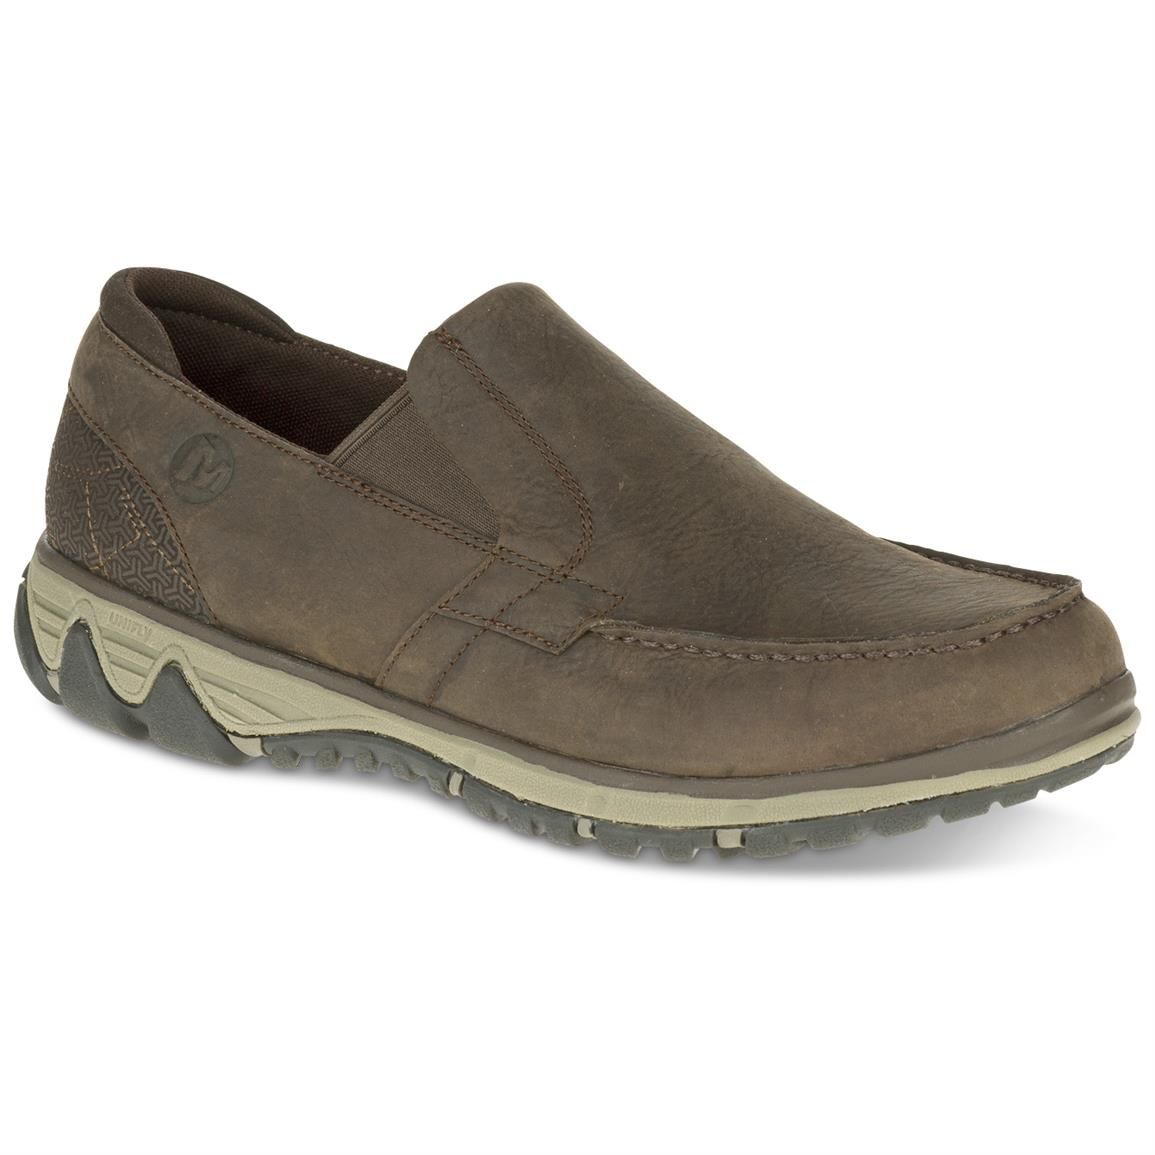 Merrell Men's All Out Blazer Moc Slip-on Shoes, Clay